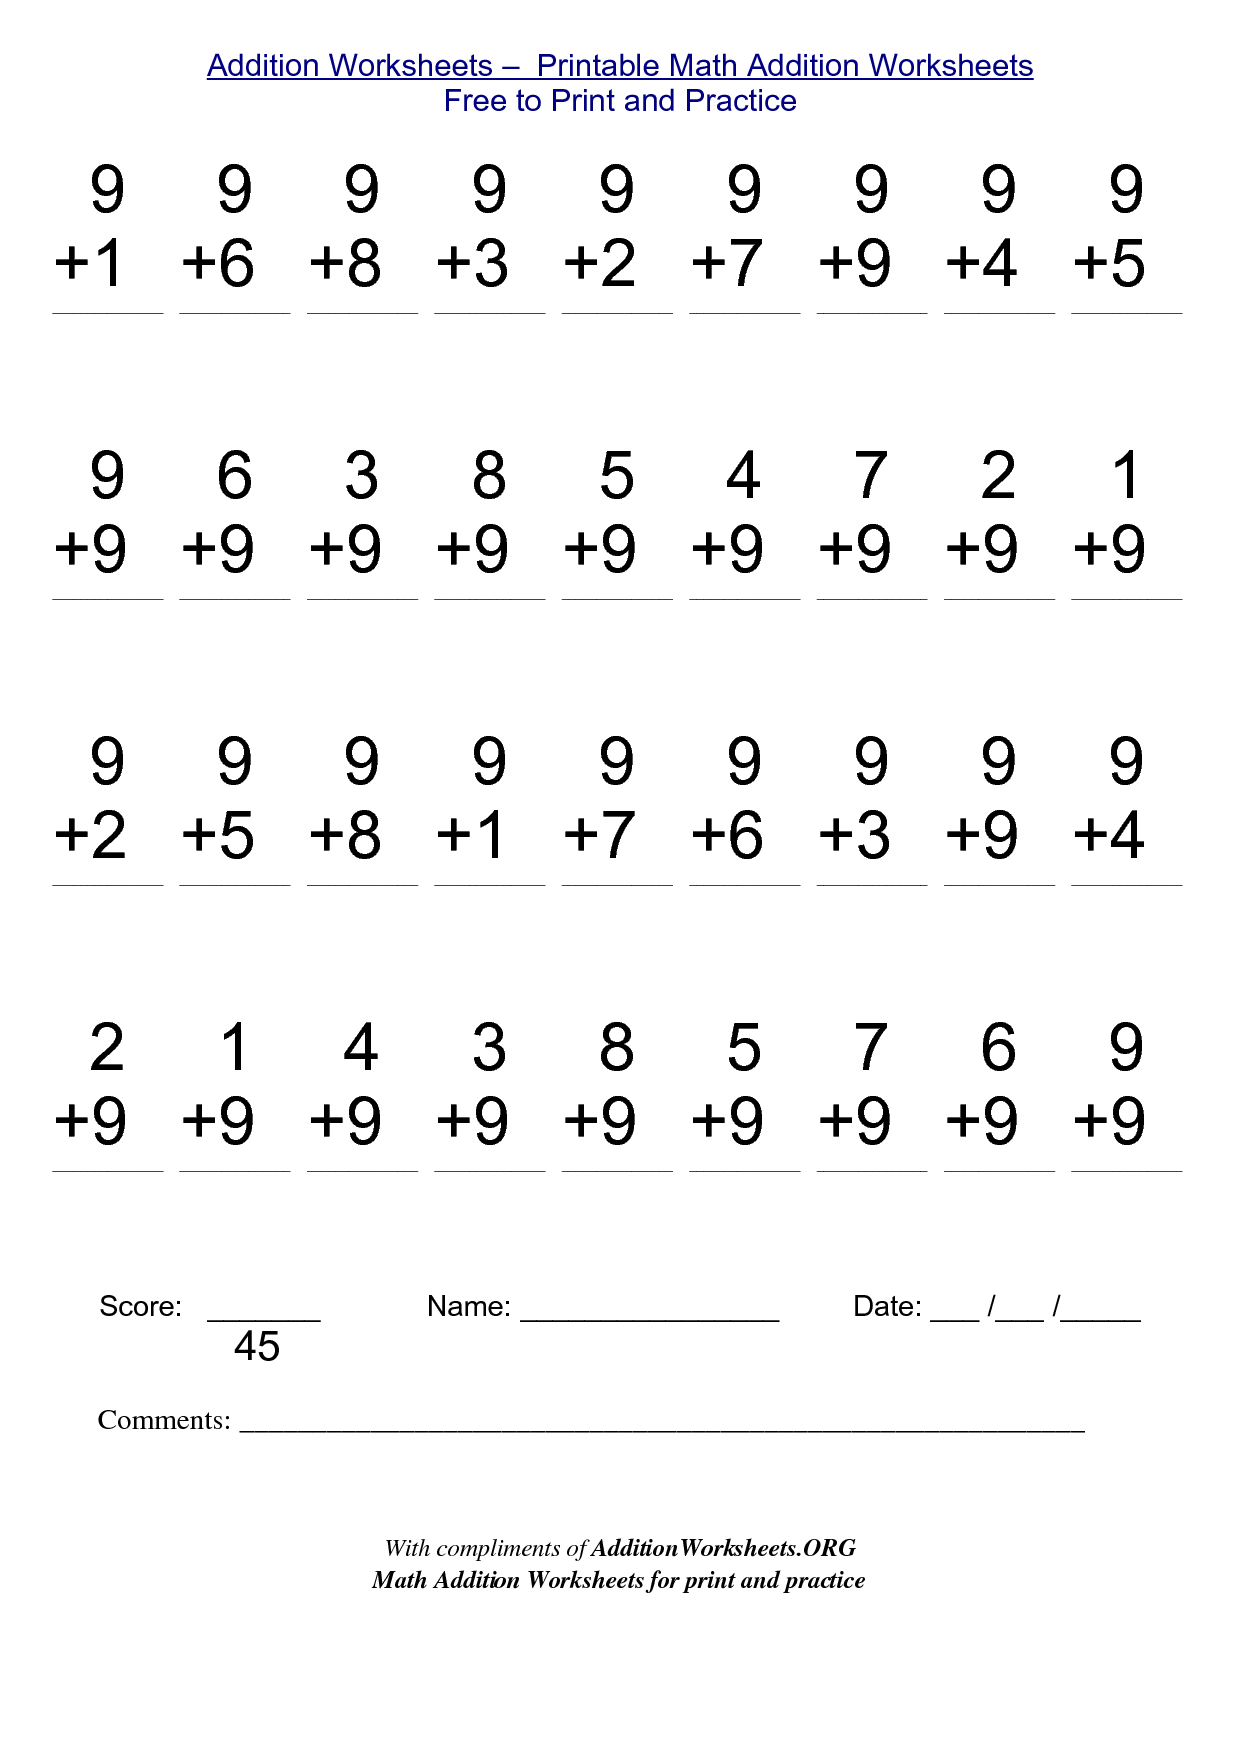 Math Worksheets for Free to Print Alot ME – Free Math Worksheets for Third Grade